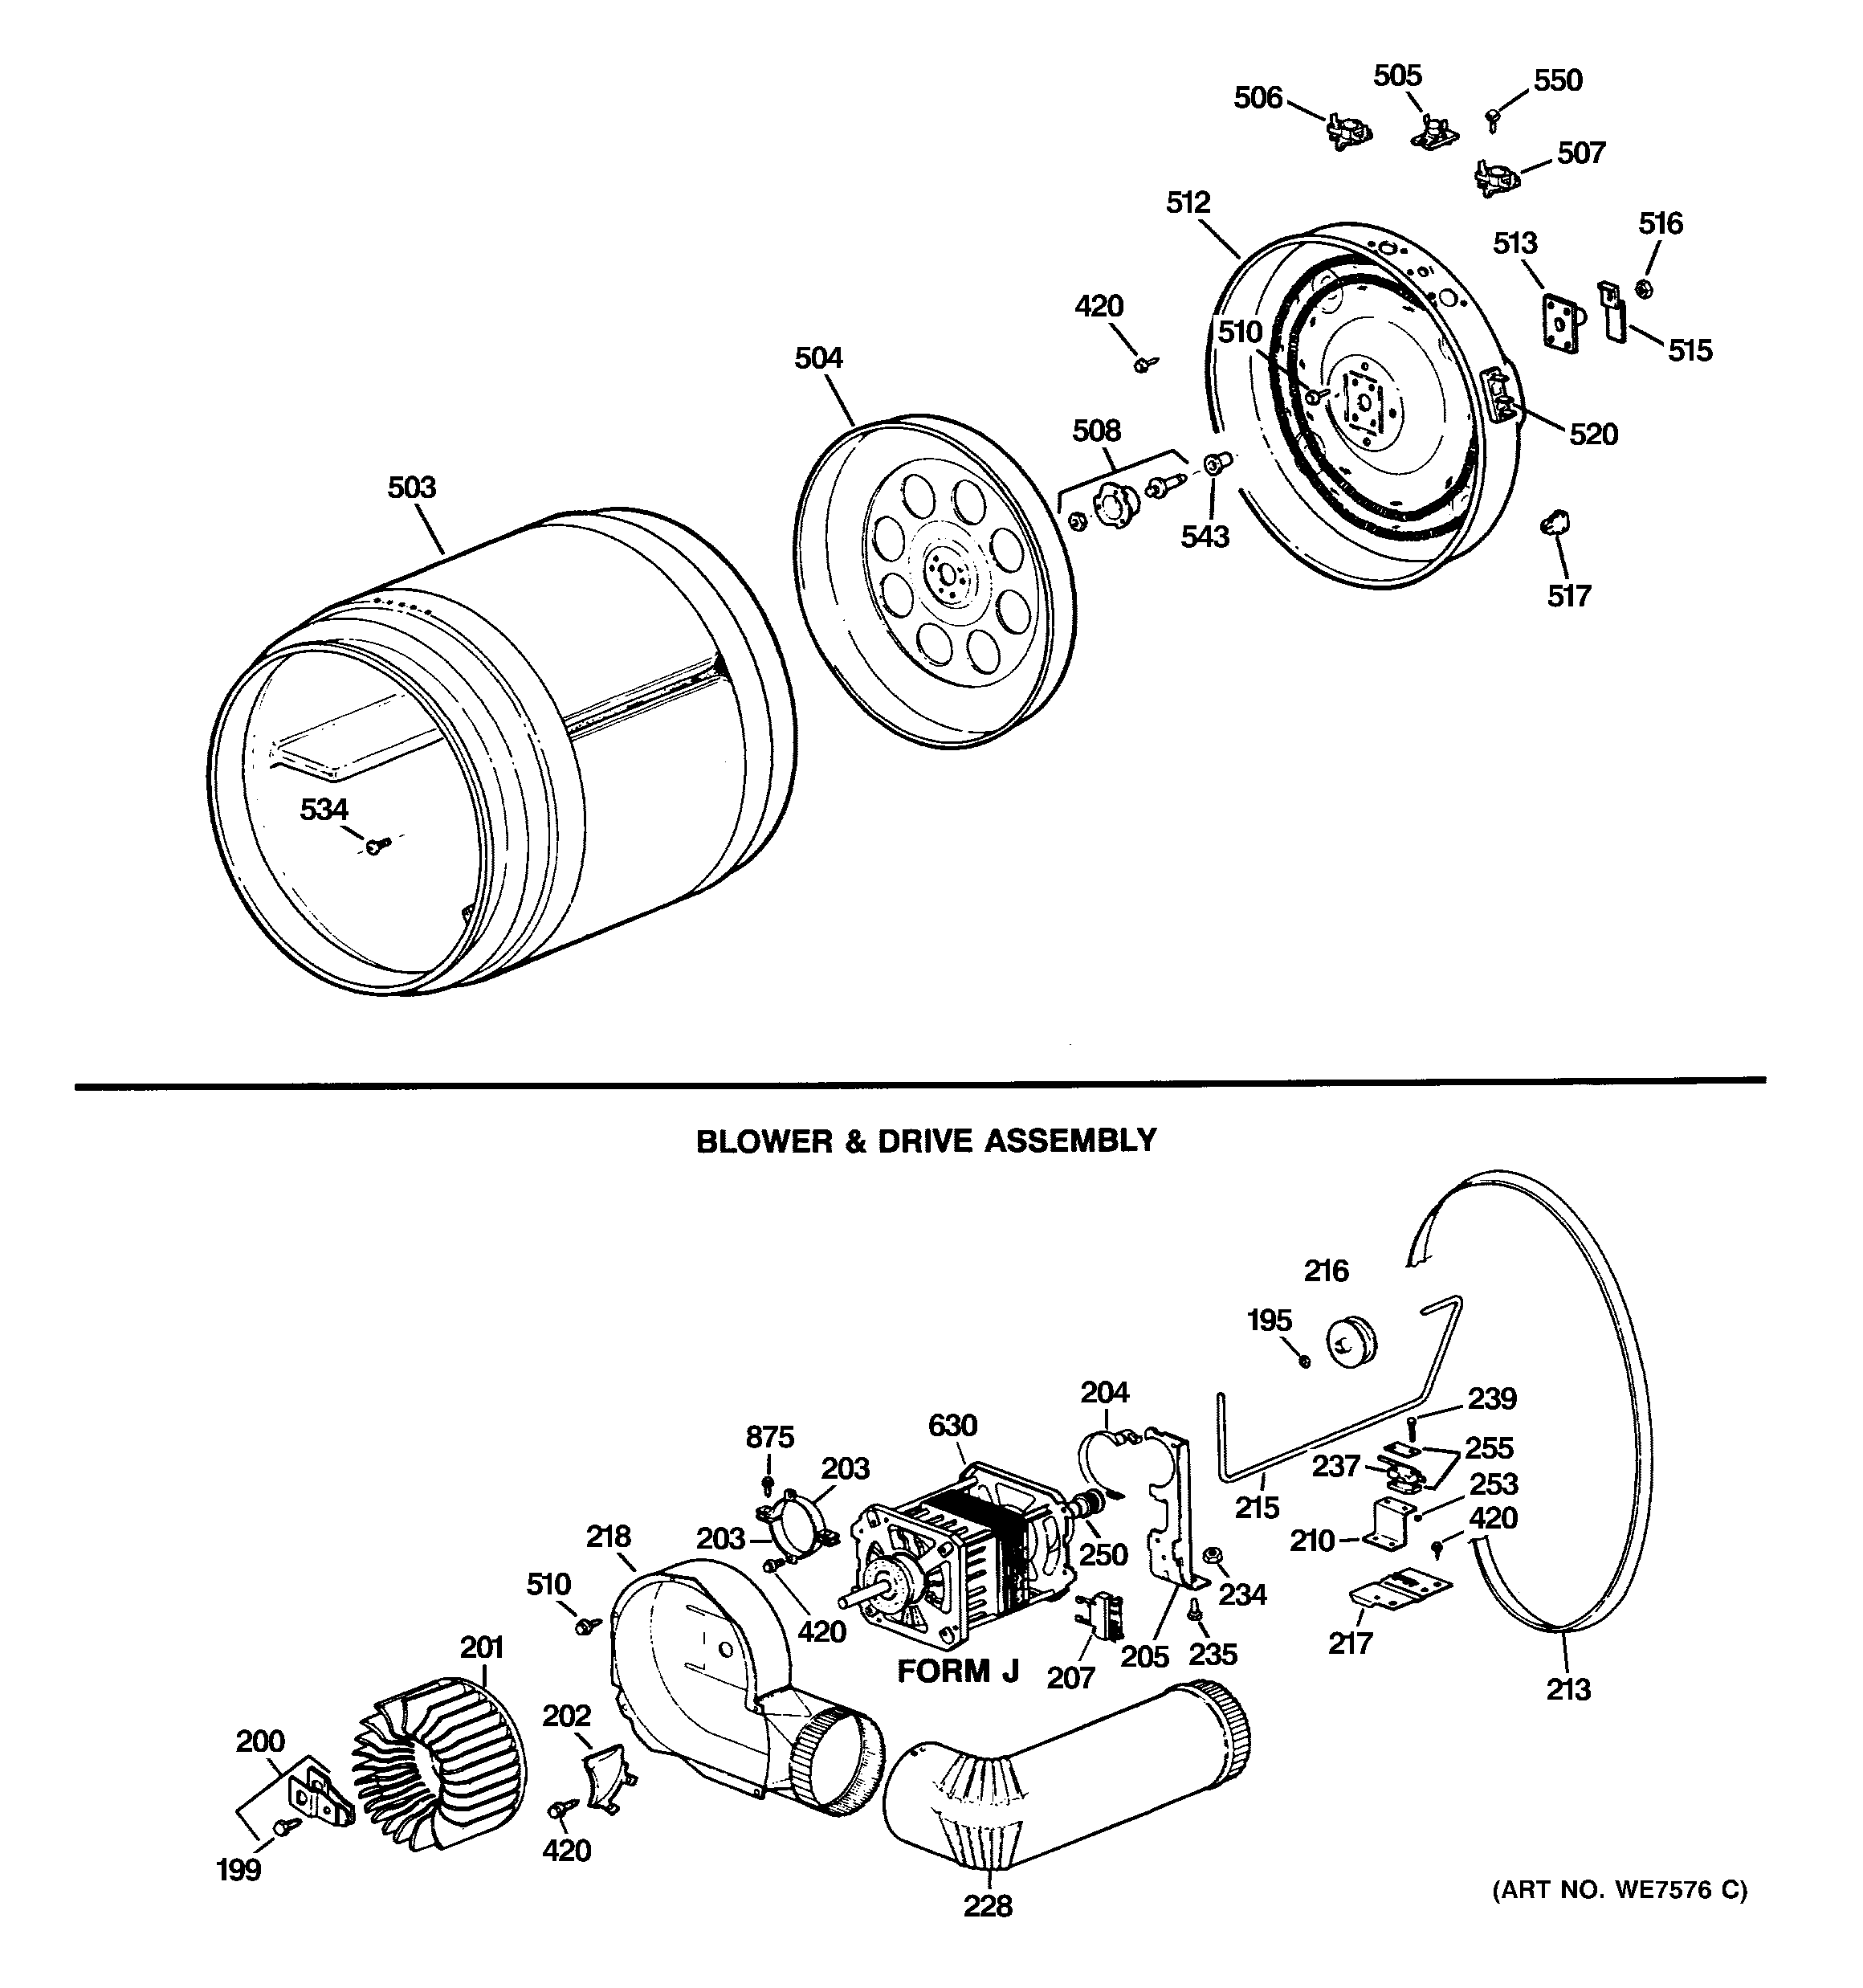 DRUM, BLOWER & DRIVE ASSEMBLY Diagram & Parts List for